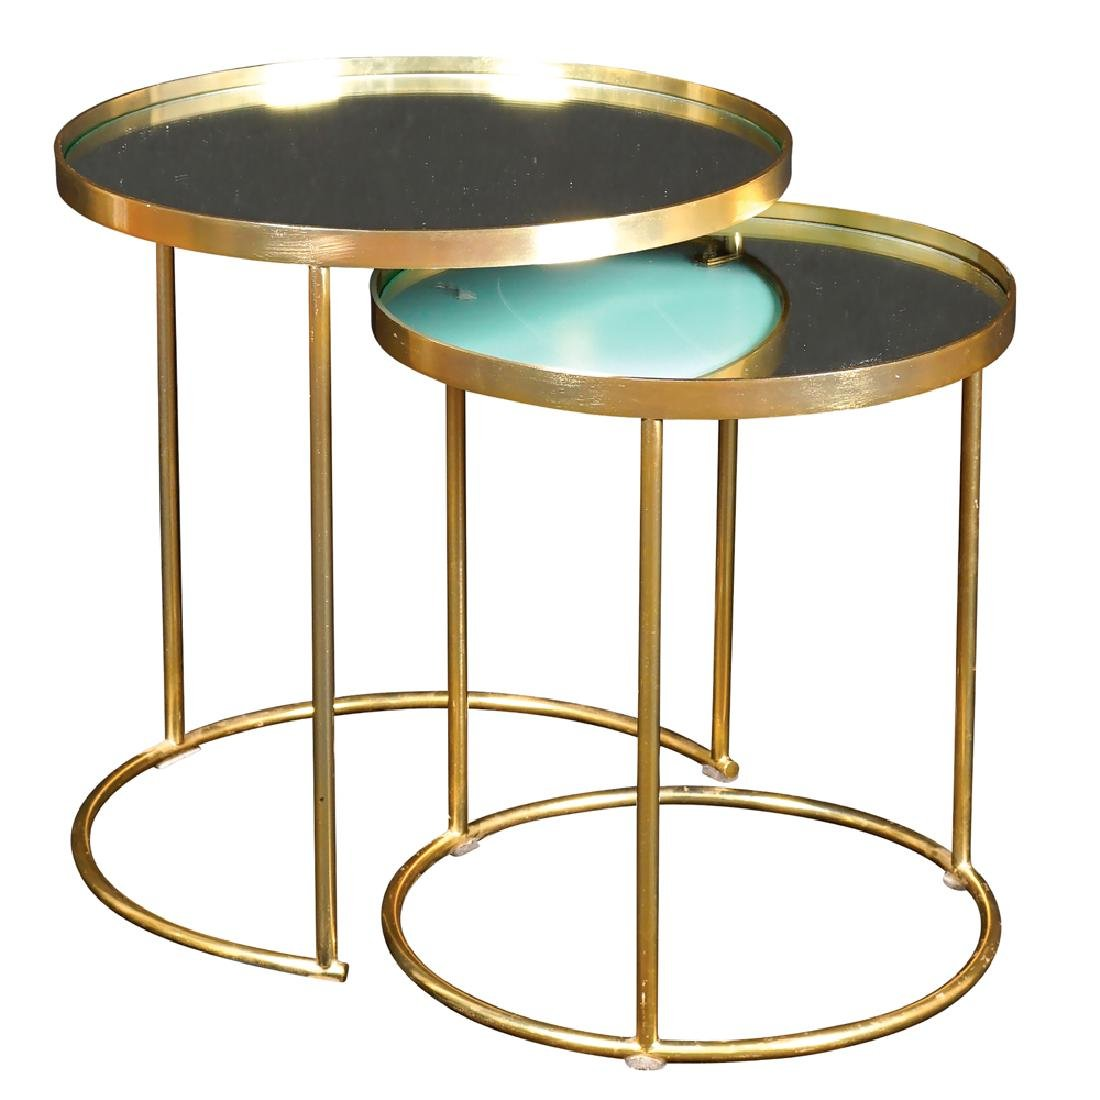 Set of snap-fit tables Italy 1970-80 46x44 cm.